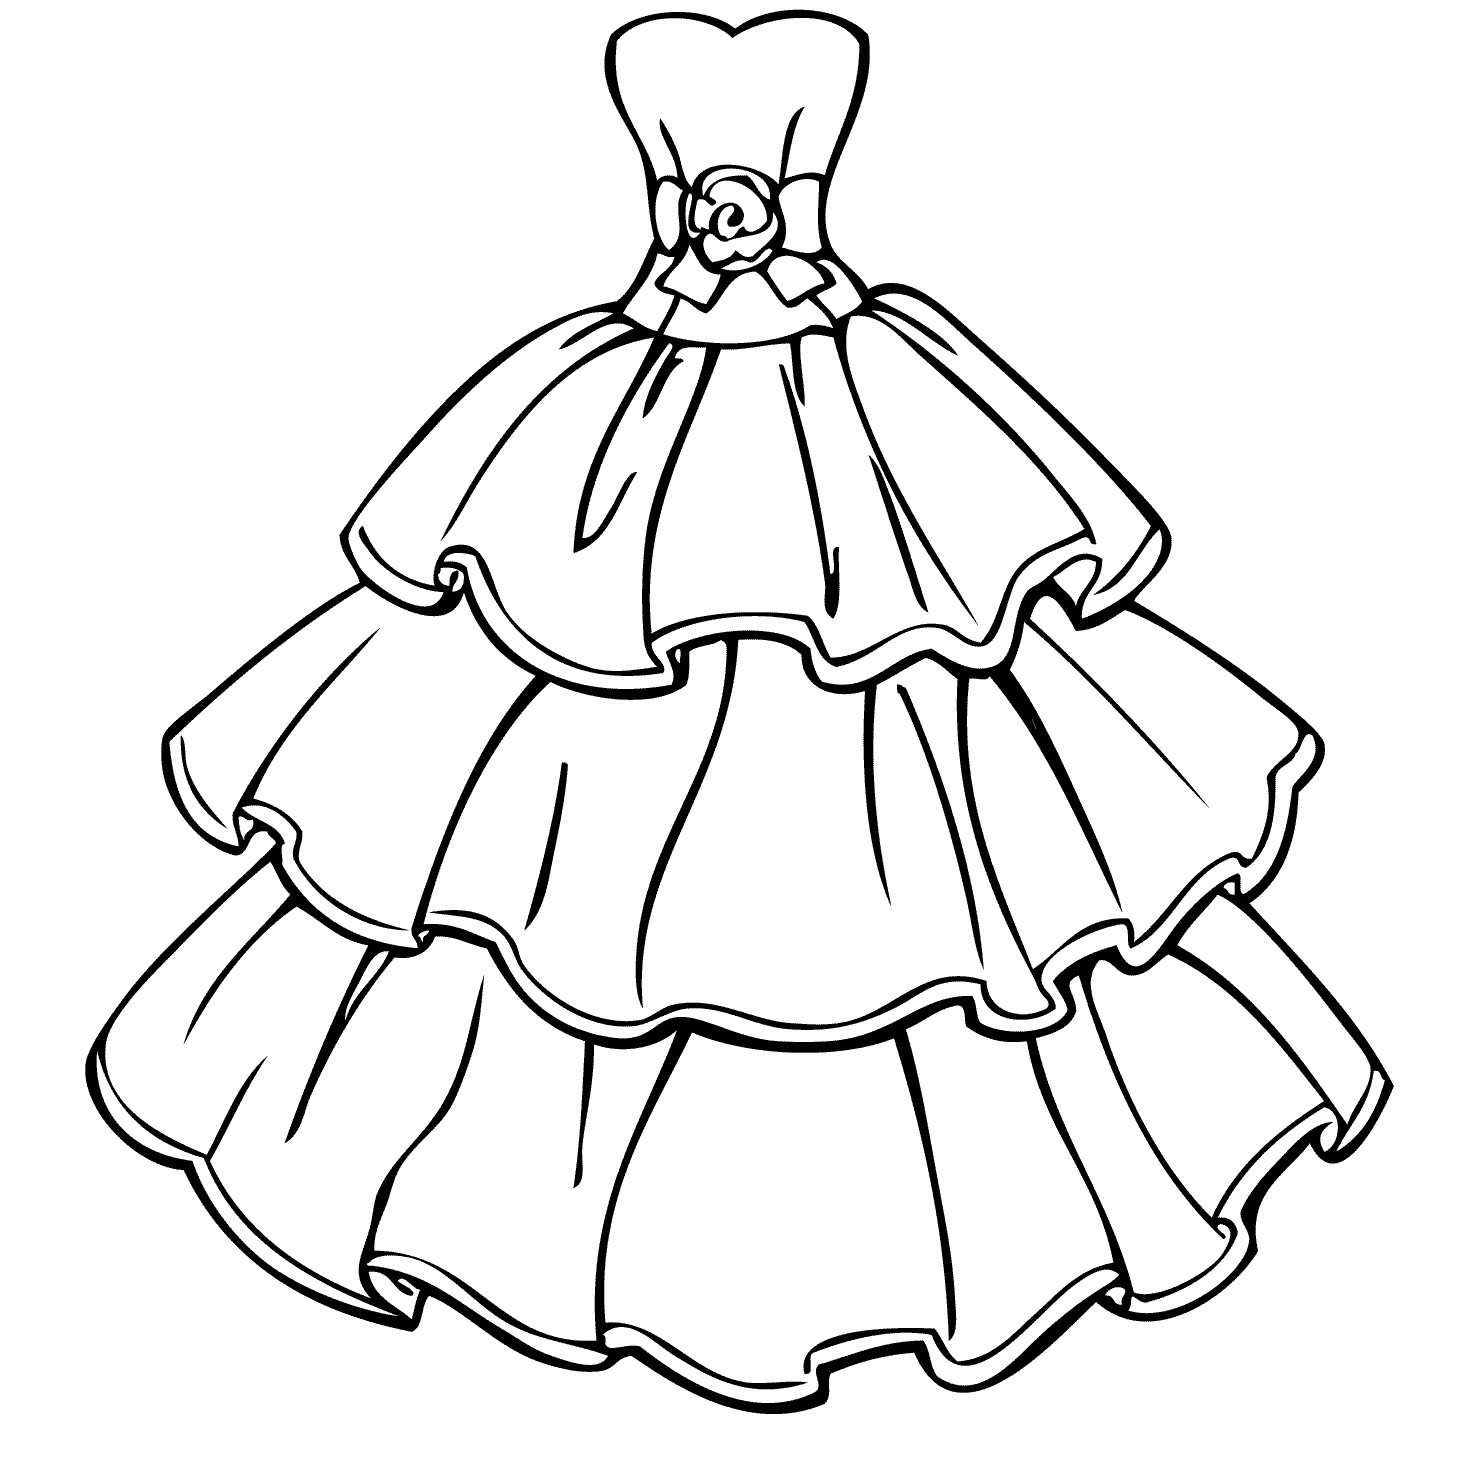 Clothes Coloring Pages Summer Clothes Coloring Pages Elegant